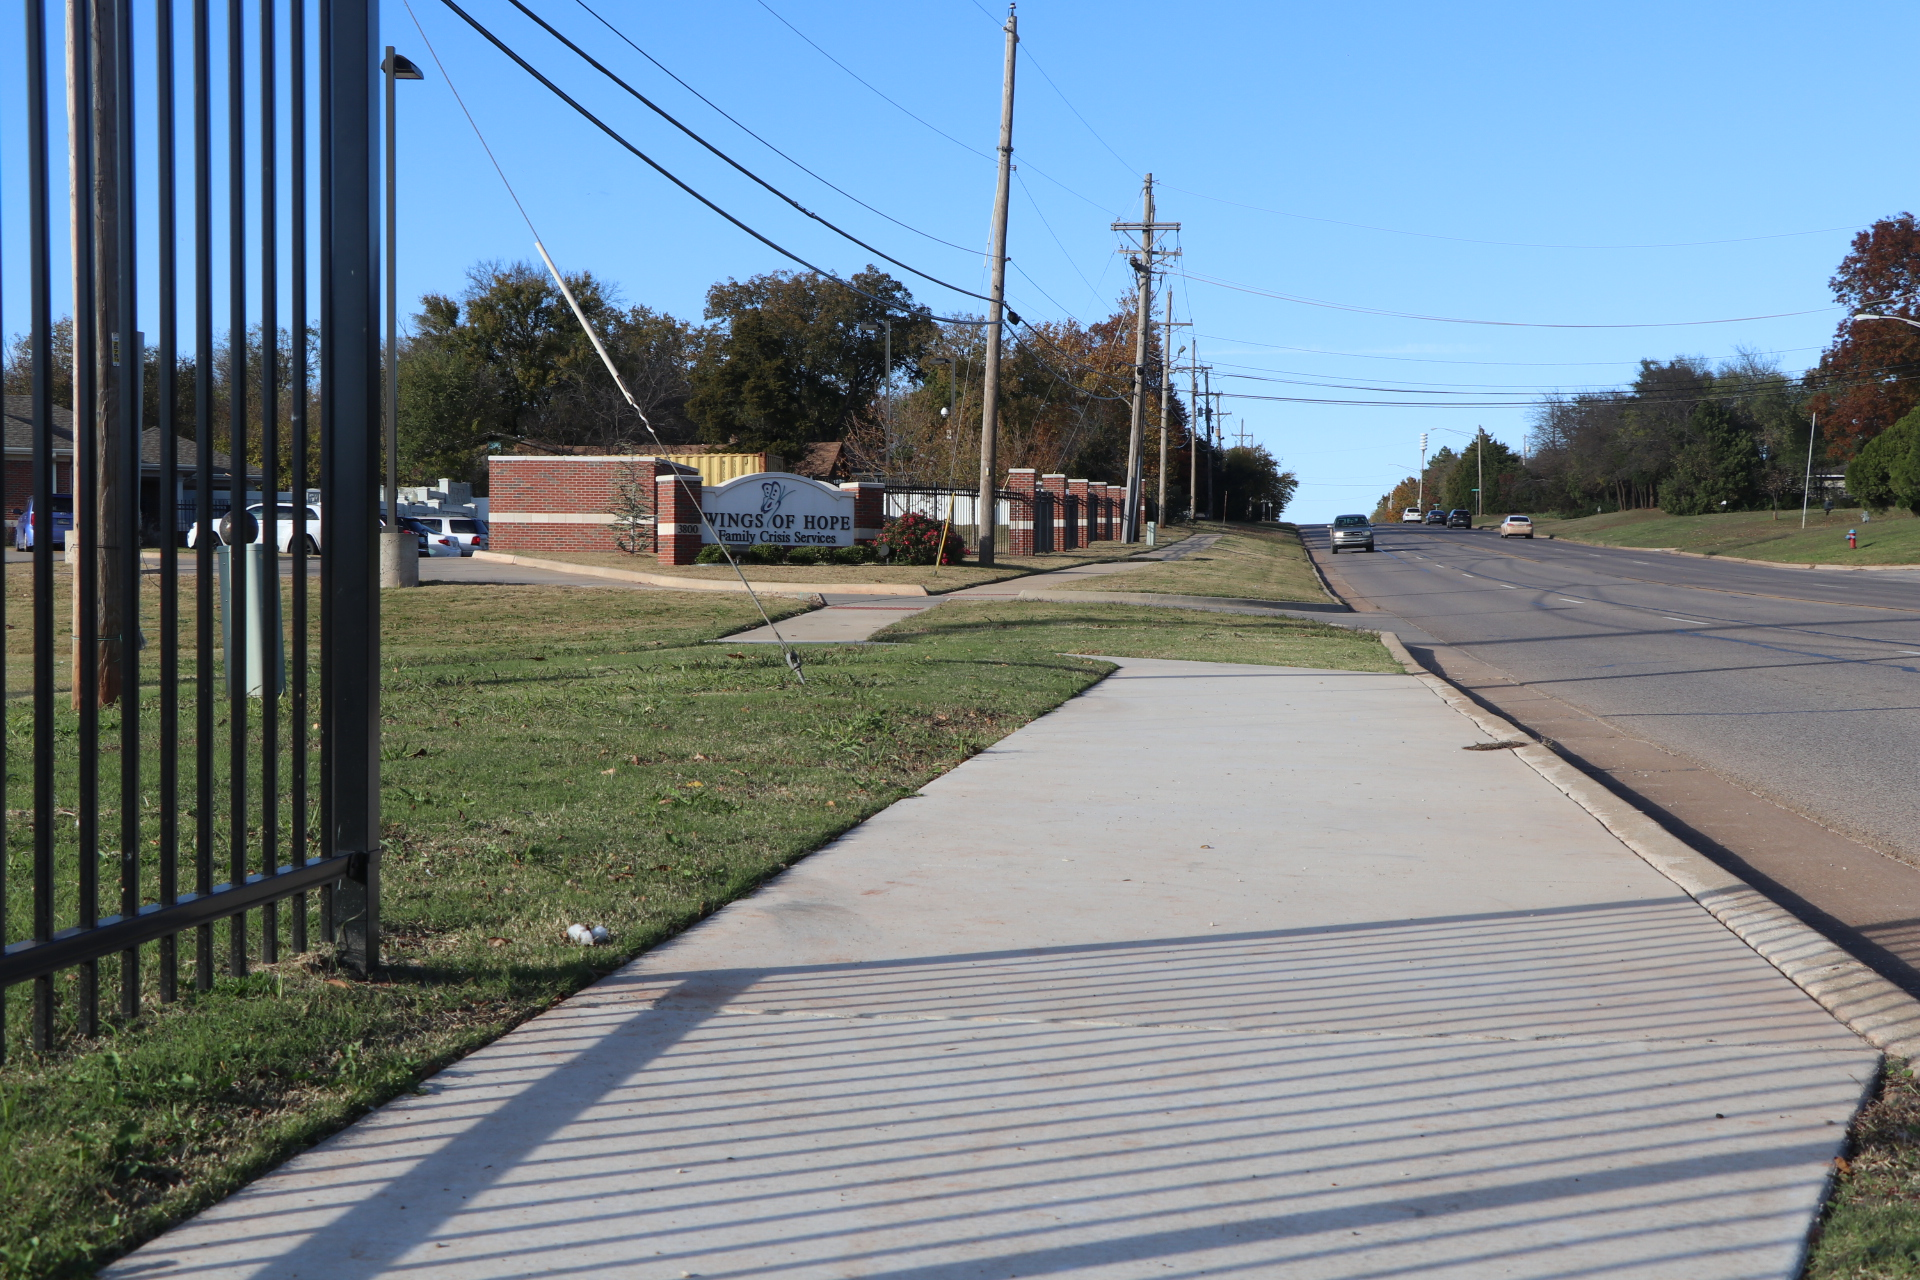 Photo of ADA Compliant Sidewalk near Wings of Hop